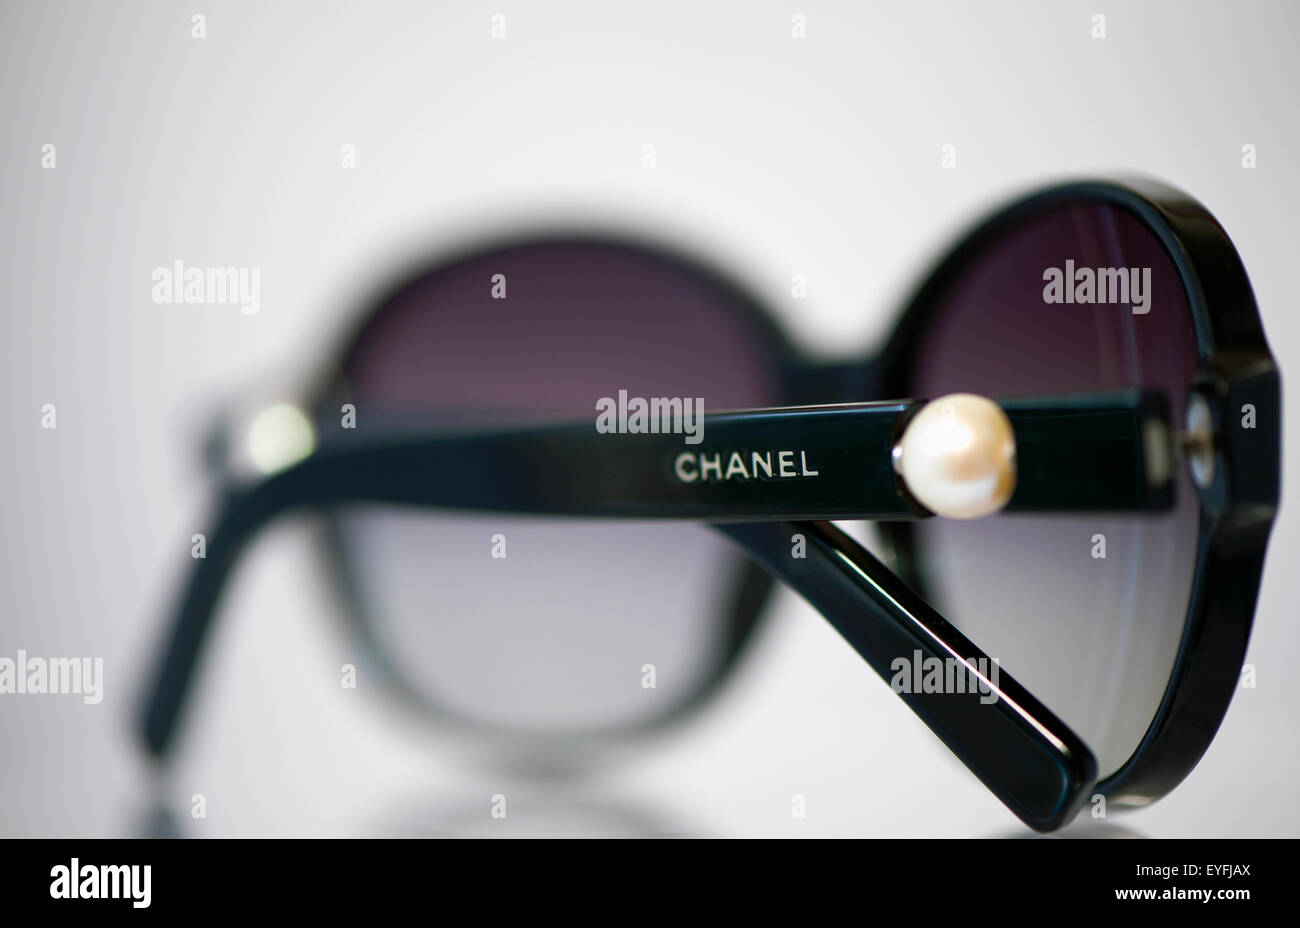 50aadca4683 Chanel Sunglasses Stock Photos   Chanel Sunglasses Stock Images - Alamy